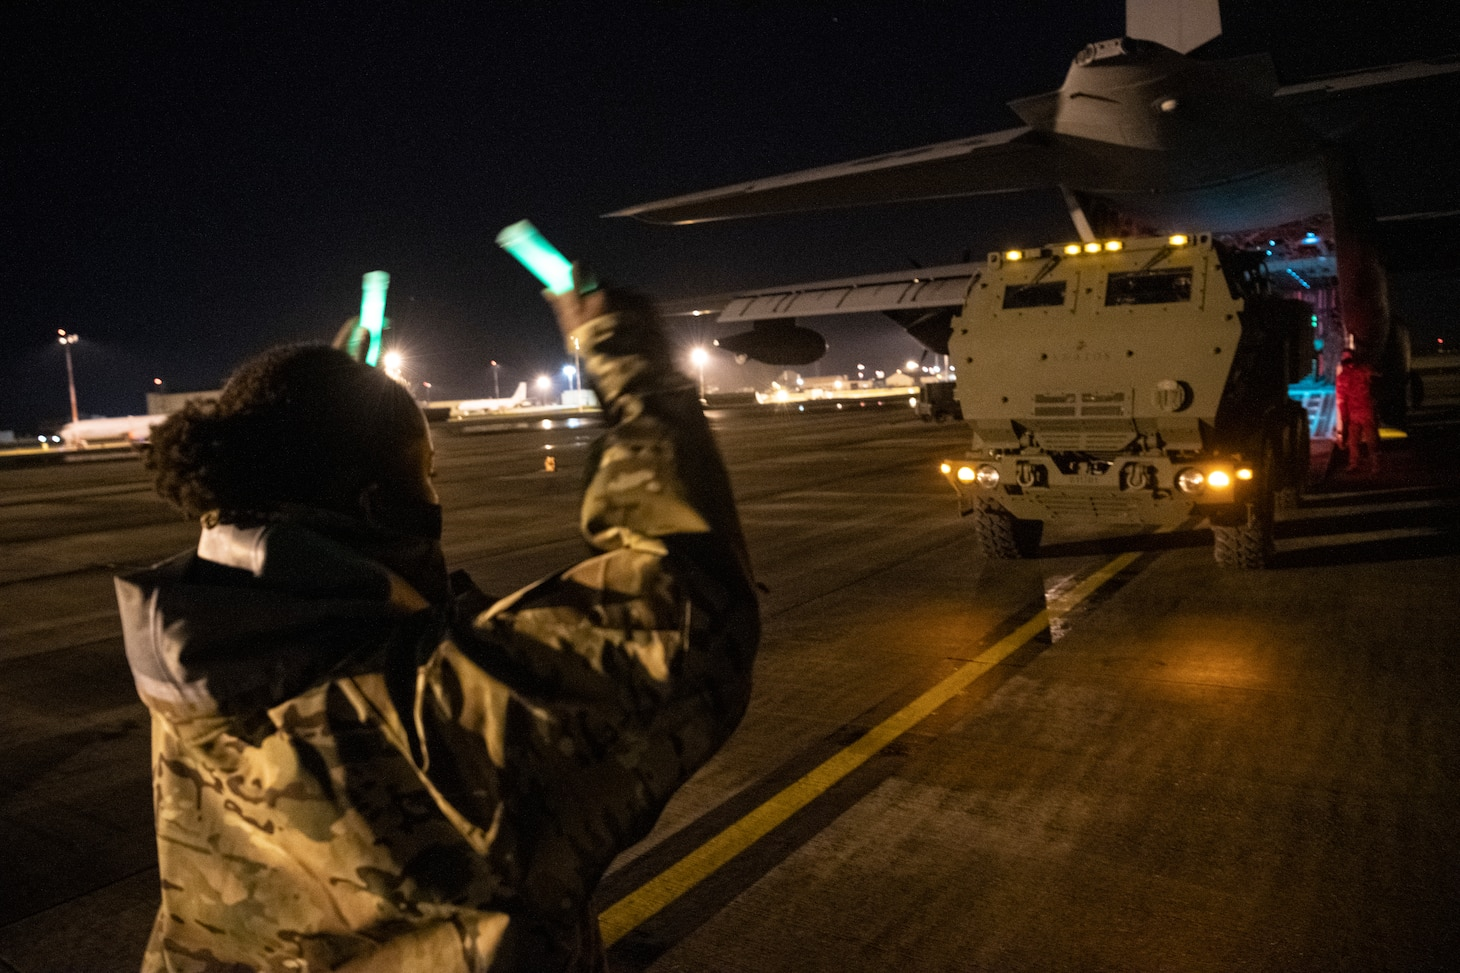 A loadmaster assigned to 352d Special Operations Wing assists marines from the 24th Marine Expeditionary Unit in off-loading a High Mobility Artillery Rocket System (HIMARS) onto an MC-130J Commando II at RAF Mildenhall on March 25, 2021 during low-visibility, night training.